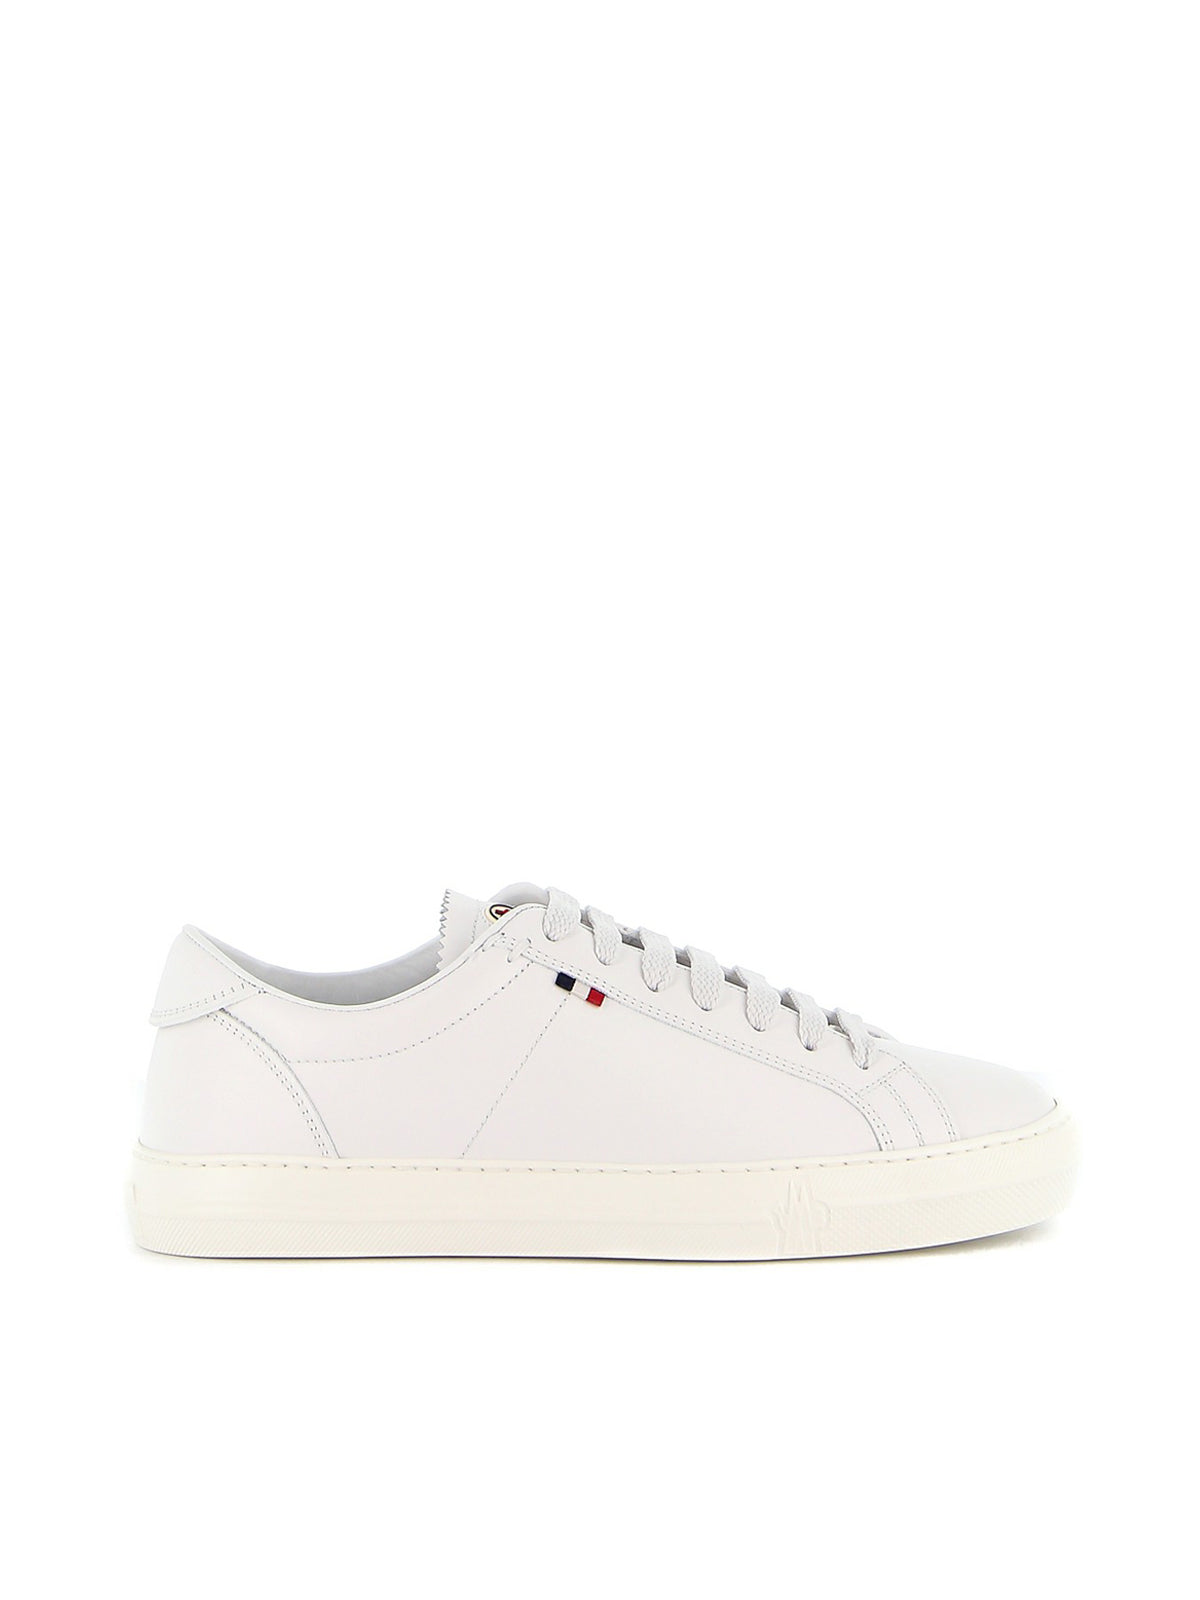 New Monaco white leather sneakers